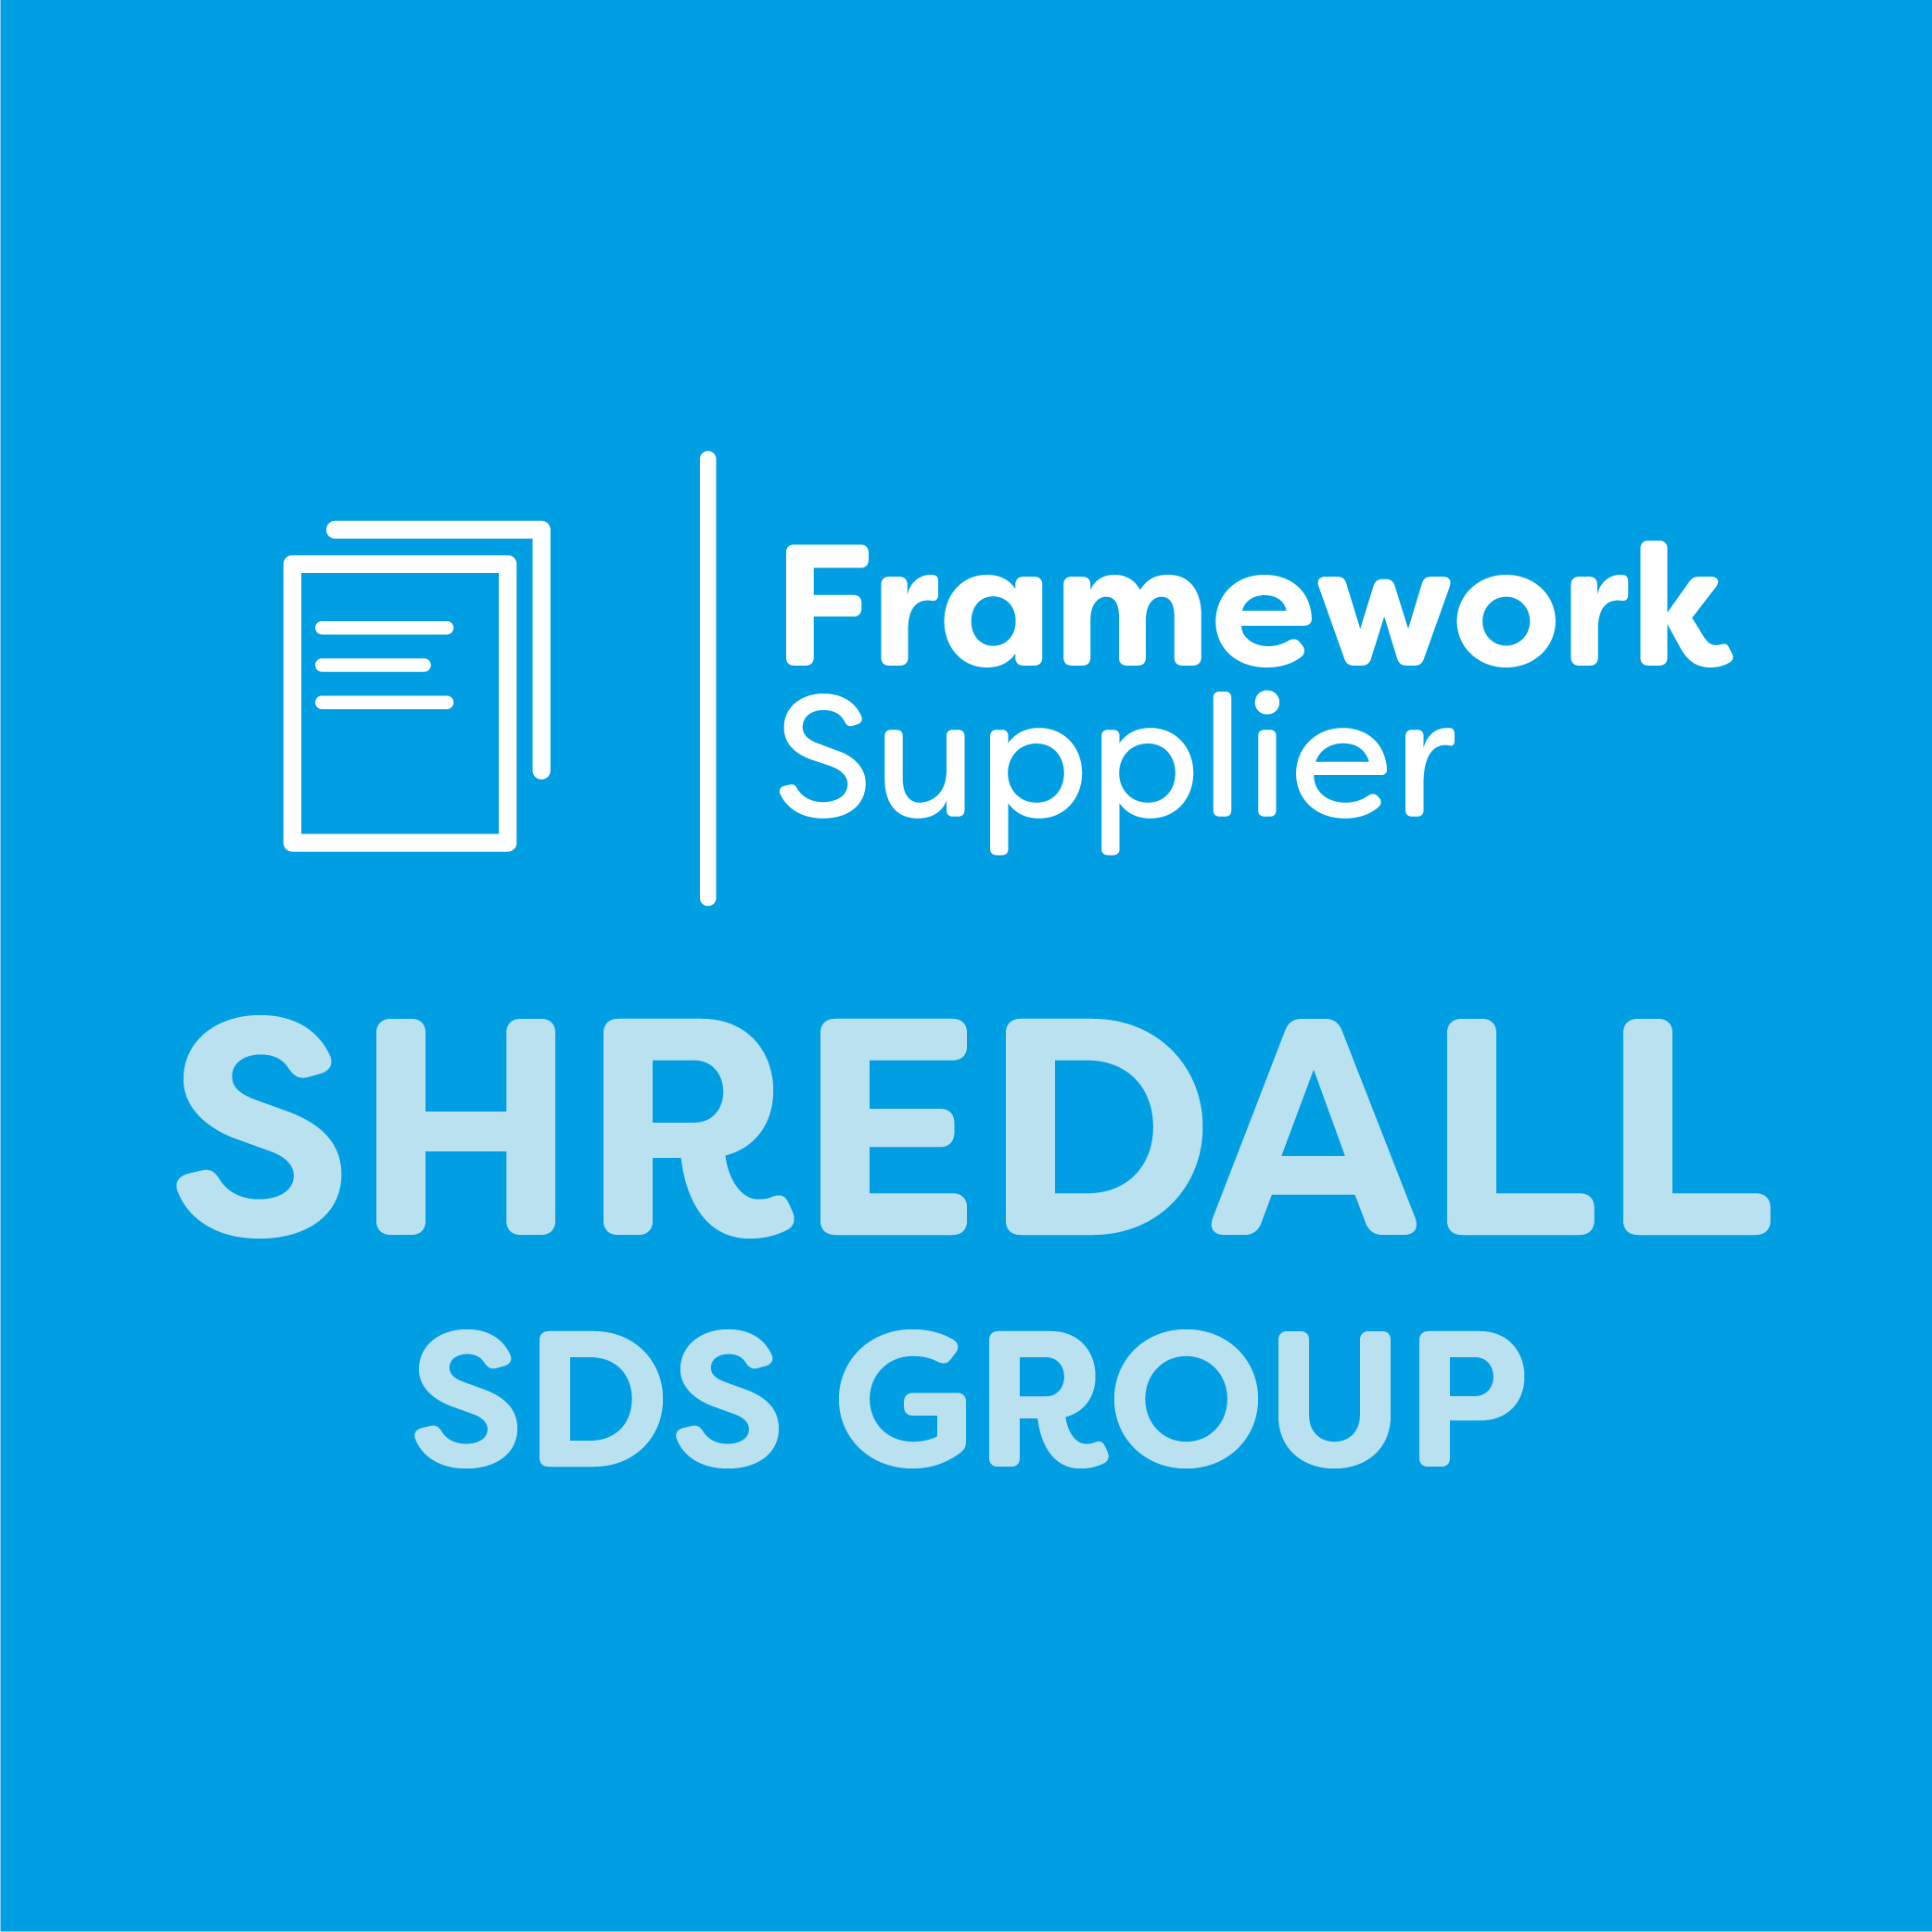 How to dispose of confidential business documents - Shredall SDS Group